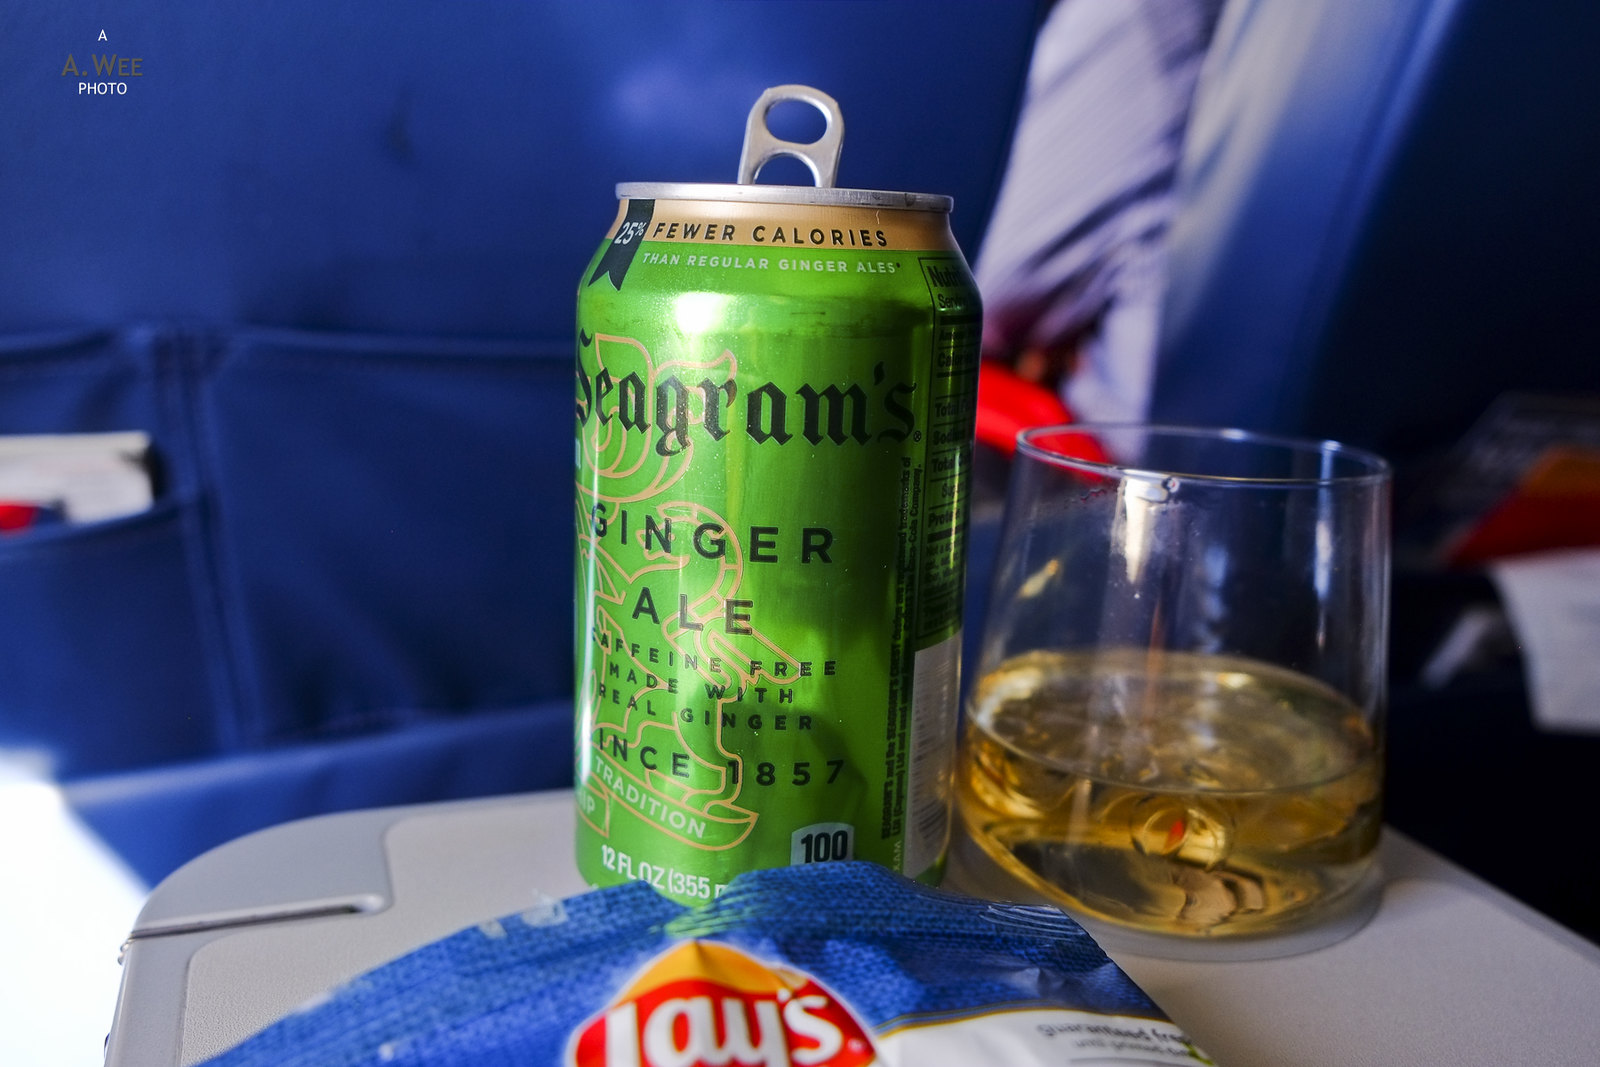 Ginger ale for inflight drink